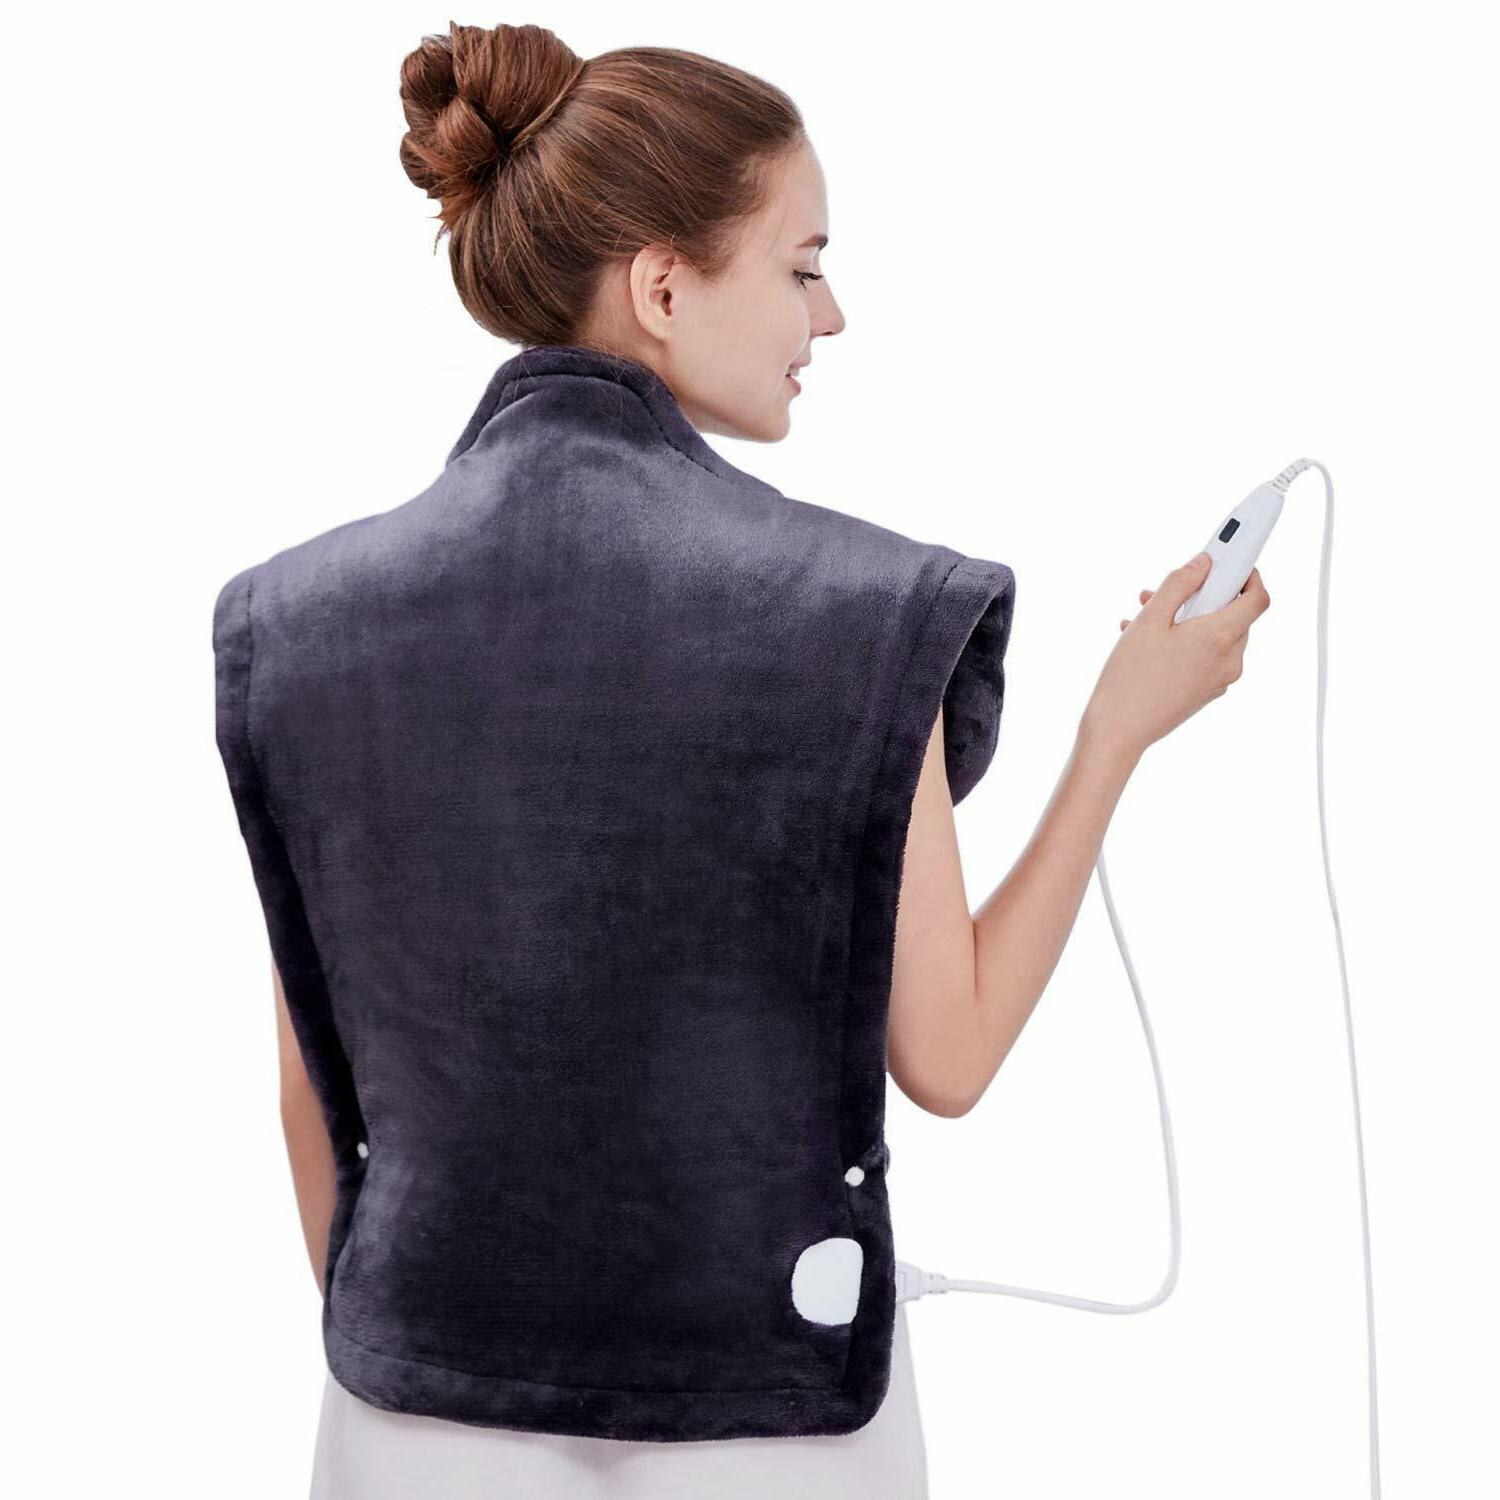 heating pad wrap for neck shoulders whole